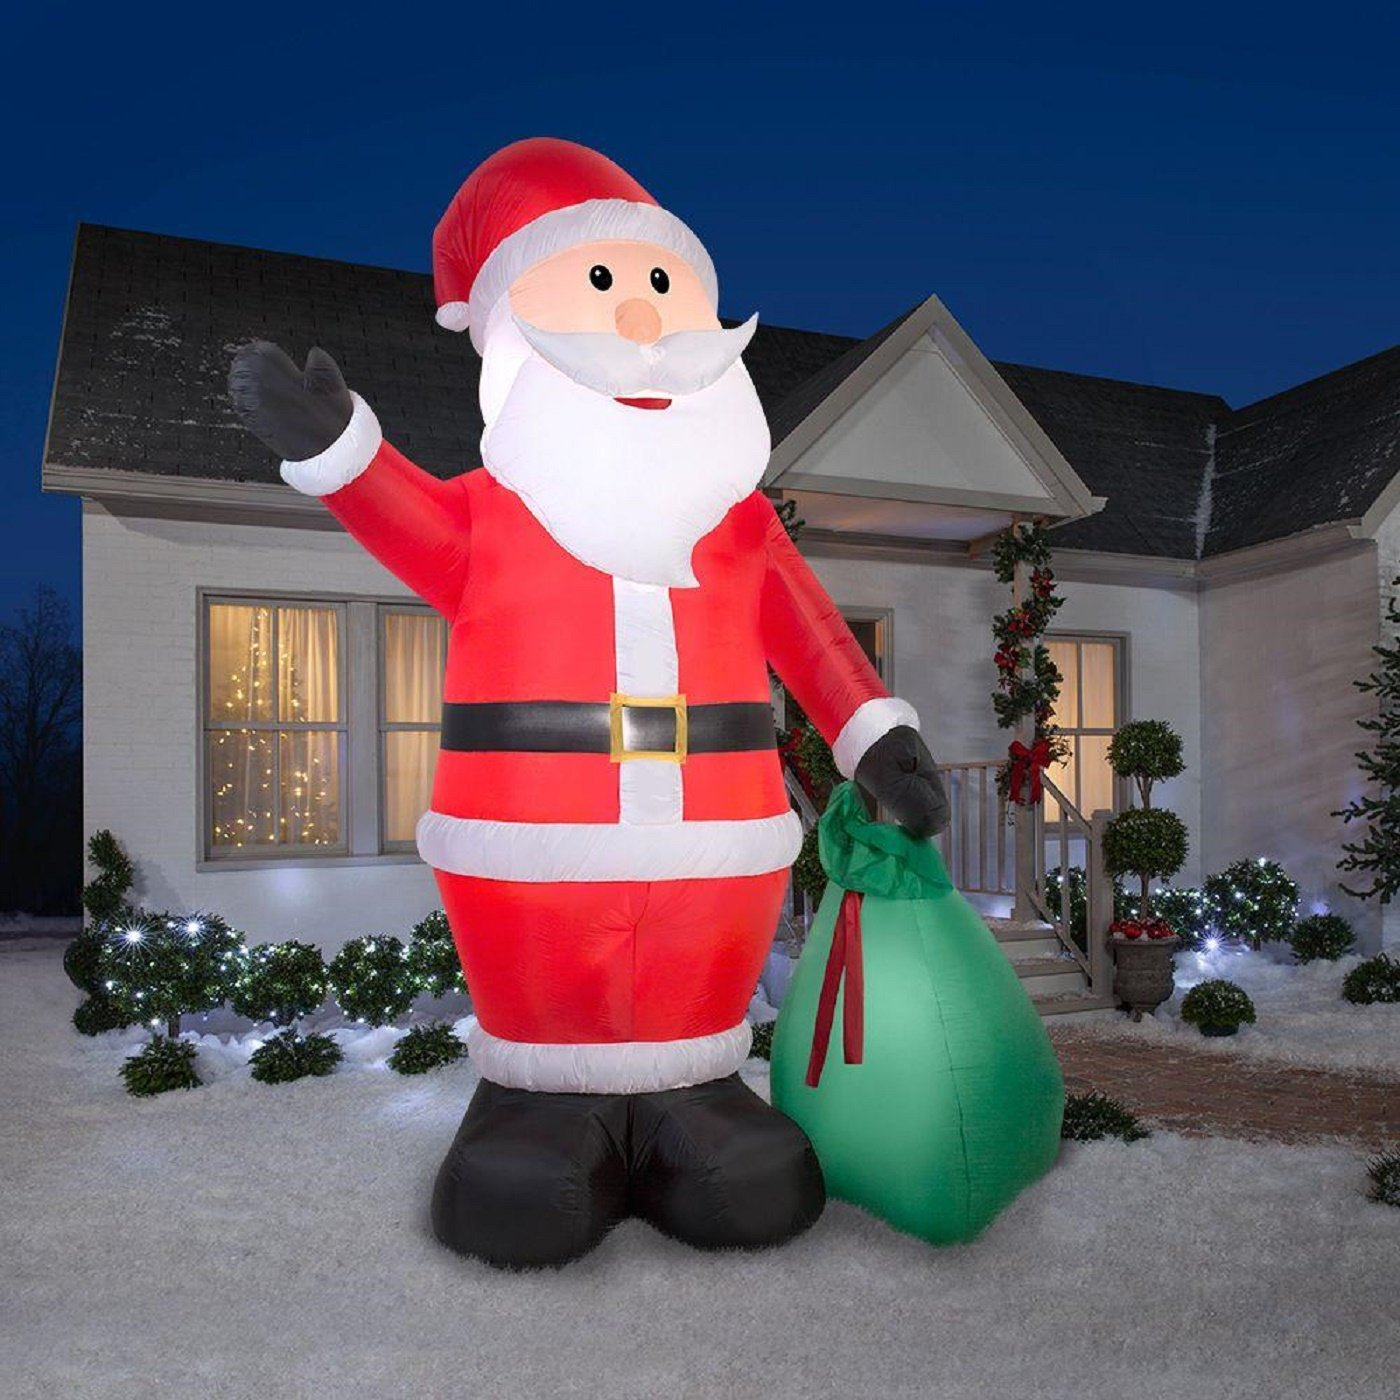 Santa Claus Outdoor Inflatables - Christmas Wikii